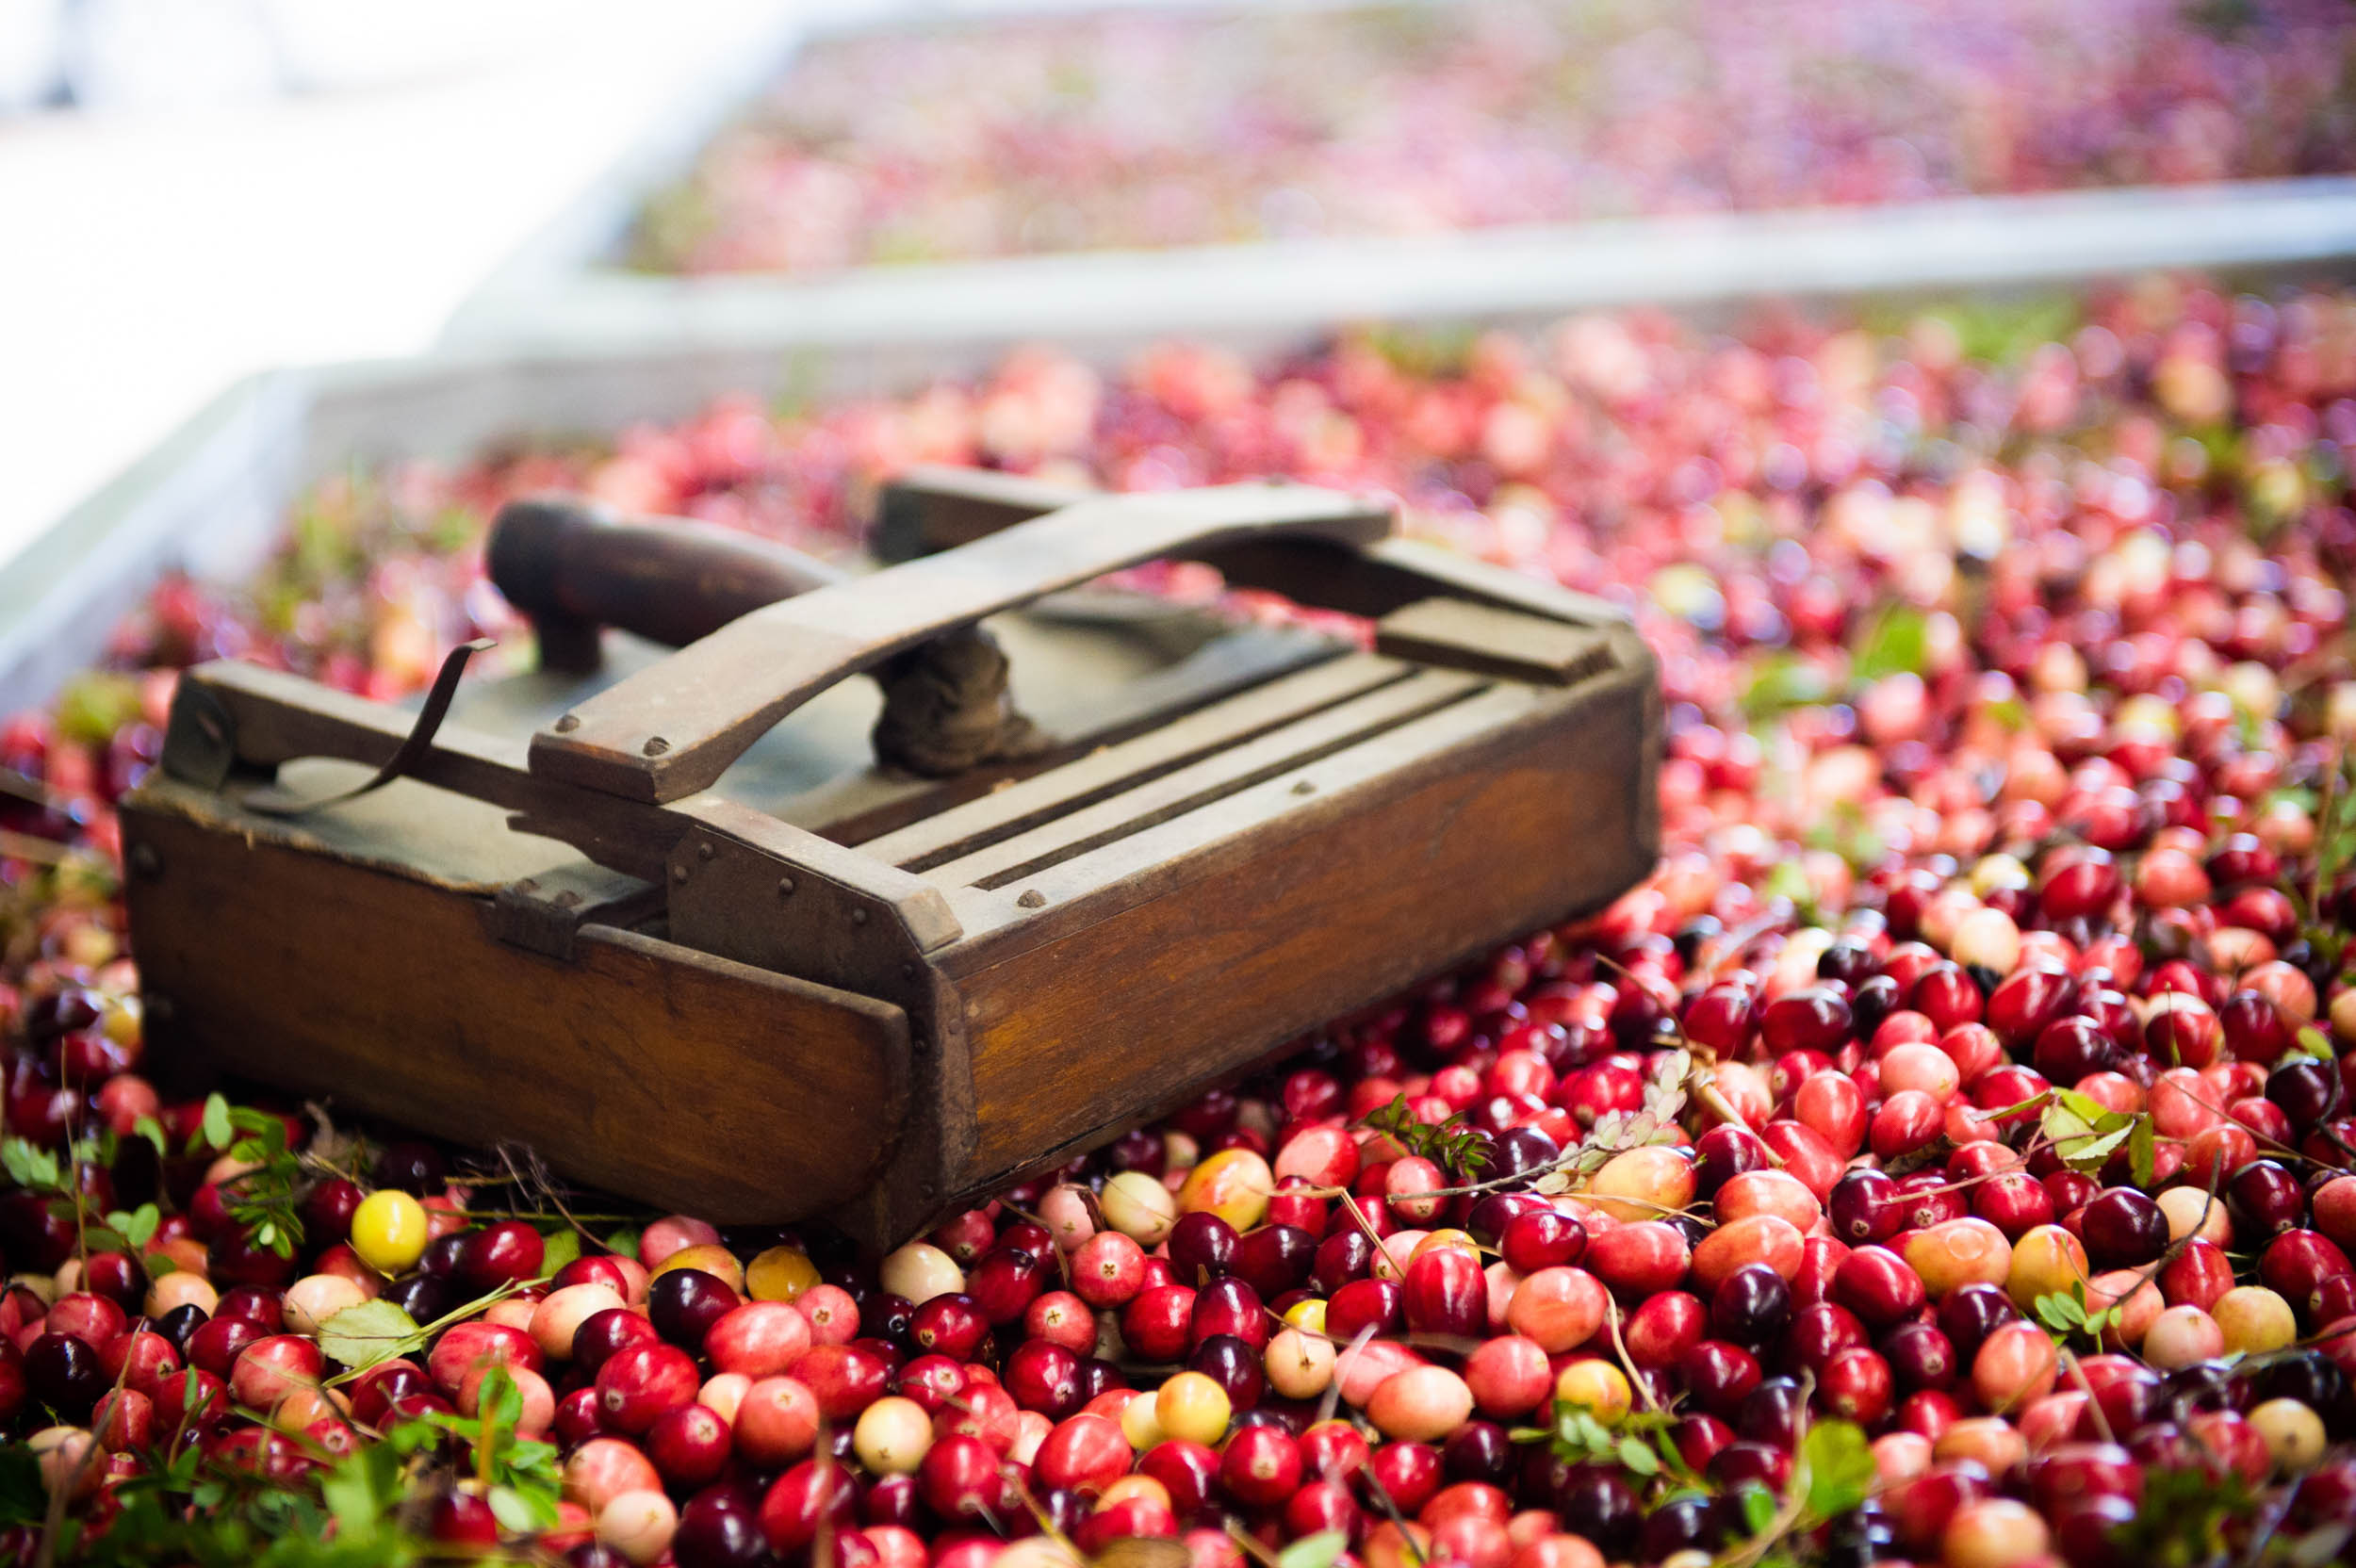 Maura Wayman Photography, Photography, Corporate Photography, stock, stock images, Massachusetts, Boston, Metro West, Wellesley, Cranberries, farmer, harvest, Cape Cod, Ocean Spray, farm house, antique home, close up, antique, still life, barn, crate of cranberries,